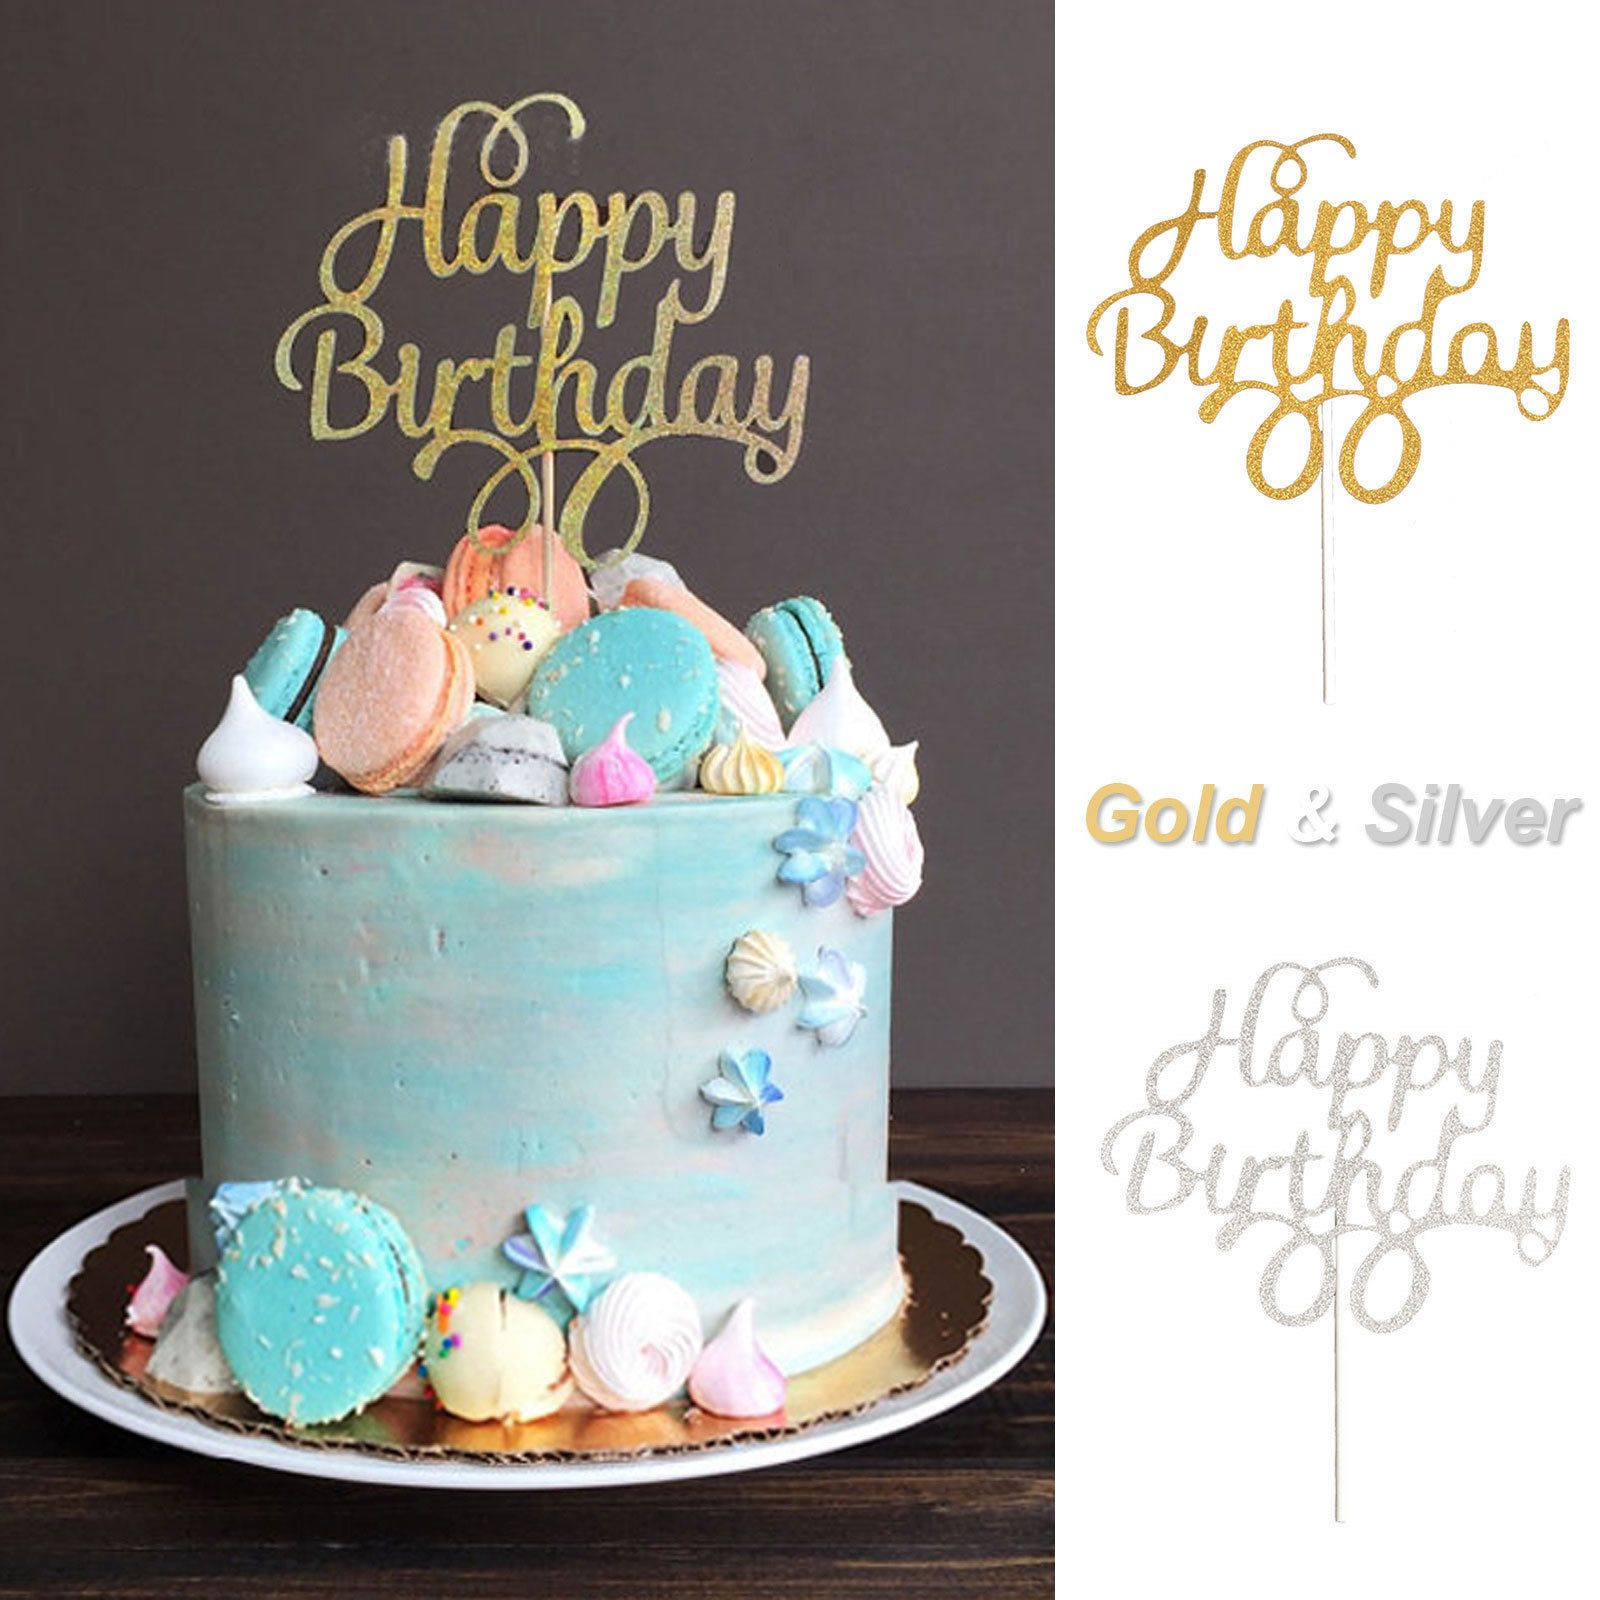 1x Cake Topper Happy Birthday Gold Silver Glitter Party Wedding Diy Decoration For Sale Birthday Cake Toppers 21st Birthday Cake Toppers Happy Birthday Cakes